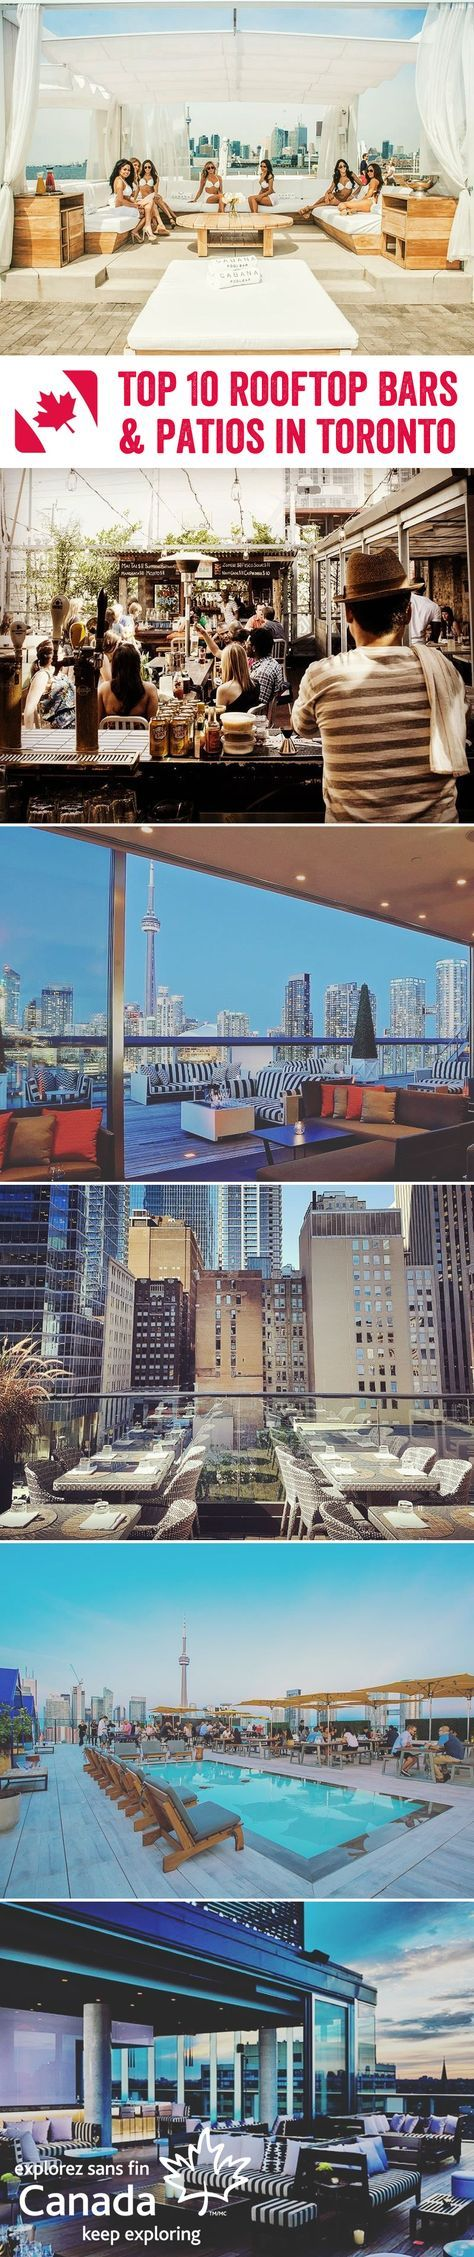 From chic bars with 360 degree views of the city's skyline, to cool tiki-style bars with giant cocktails, here are some of the best rooftop bars and patios in the vibrant city of Toronto